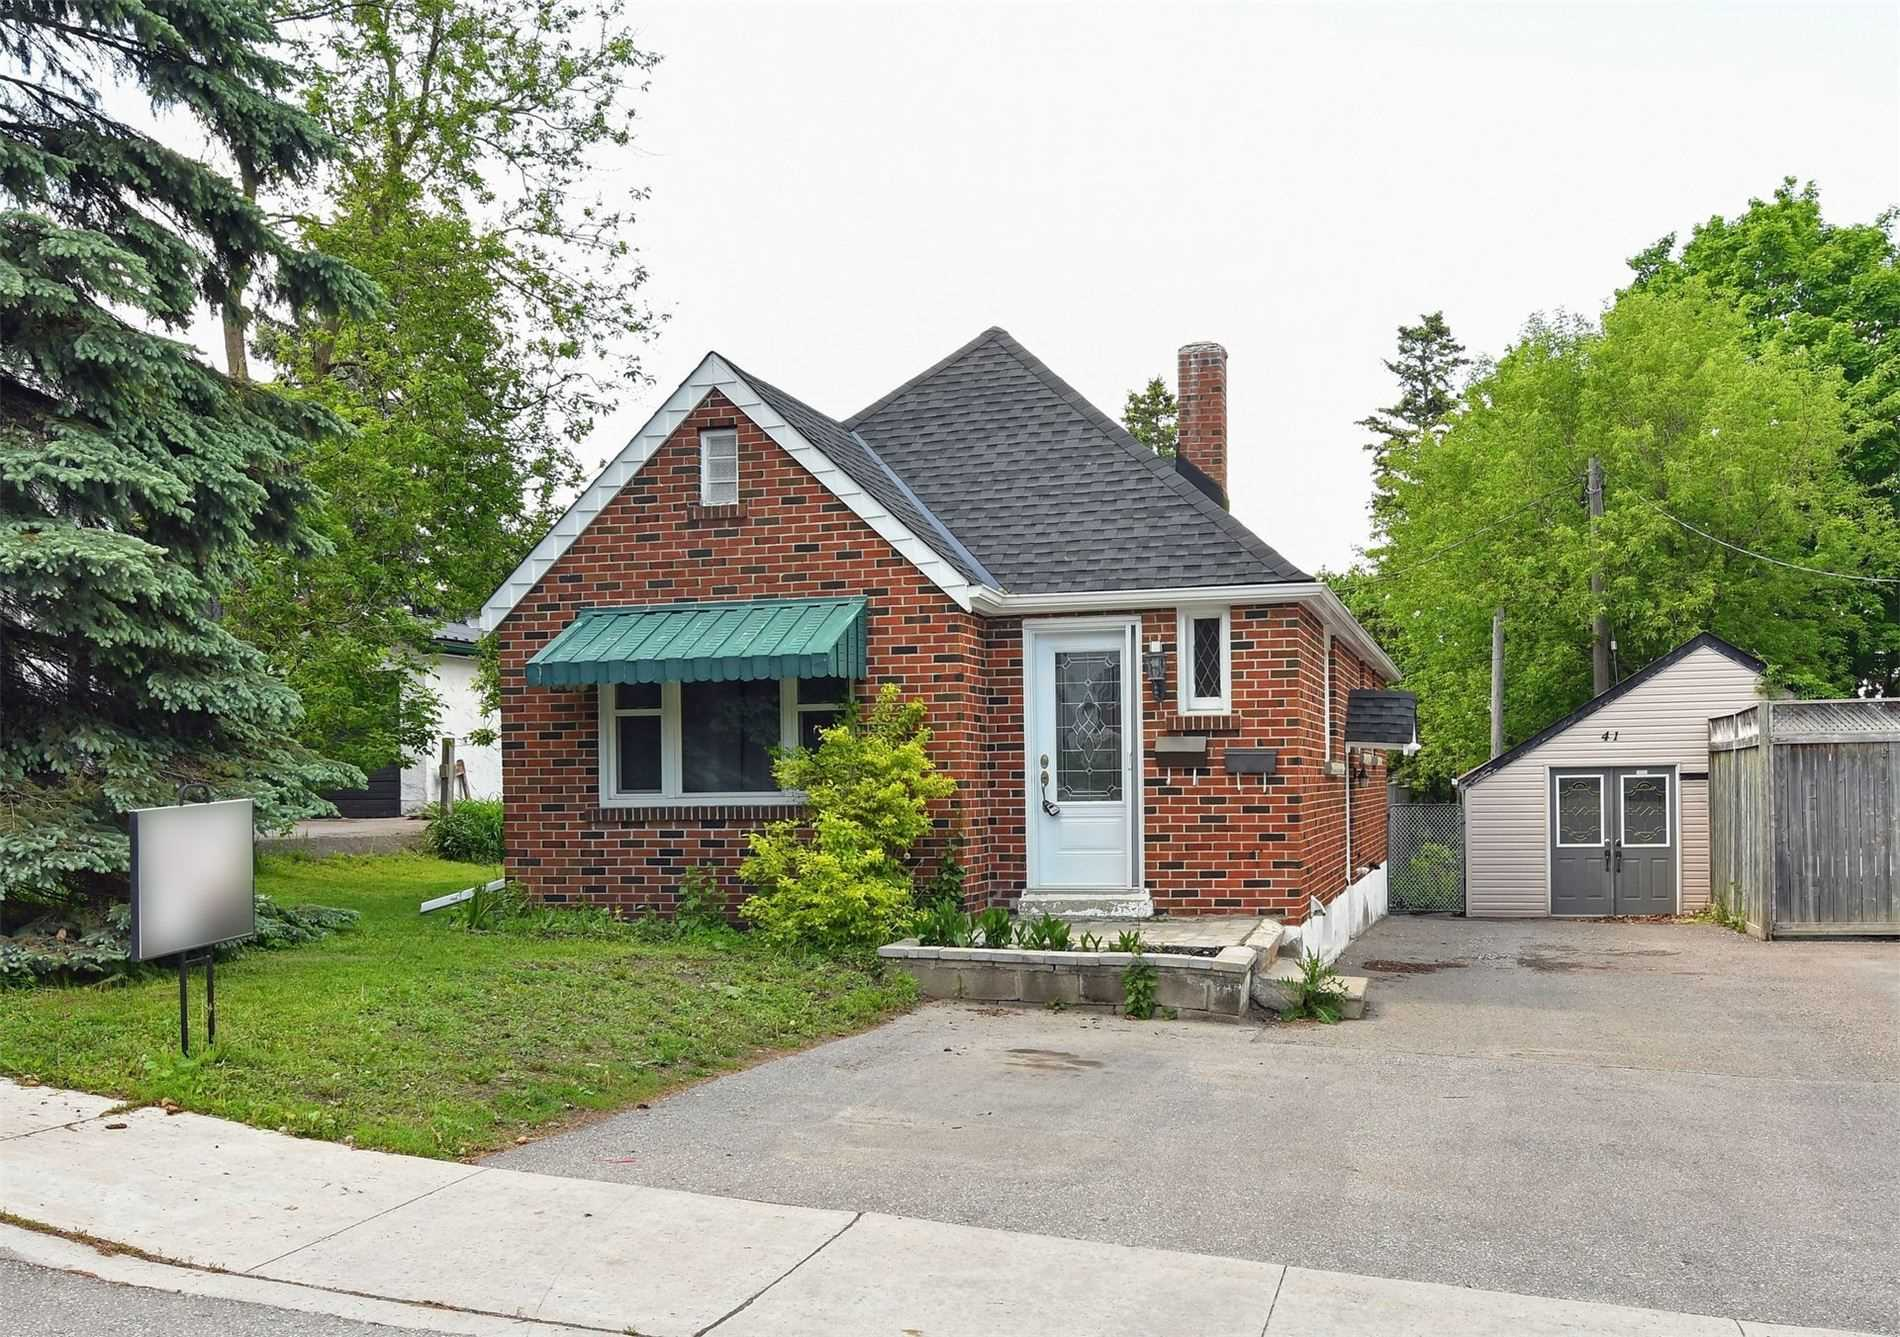 pictures of house for sale MLS: W4695075 located at 41 First Ave, Orangeville L9W1H9